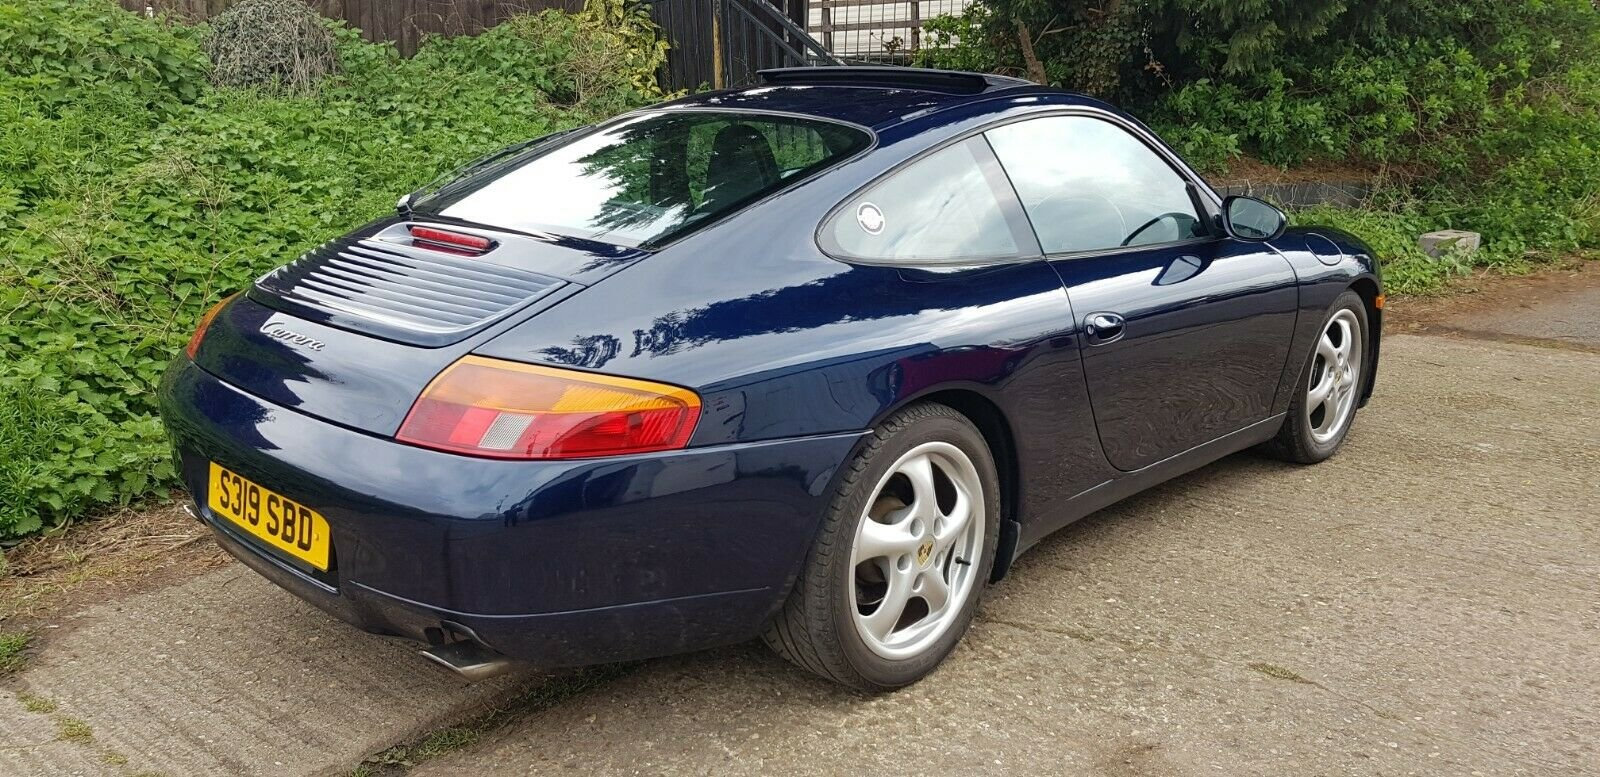 1998 911 Porsche Carrera, Full History, Low Miles For Sale (picture 4 of 6)